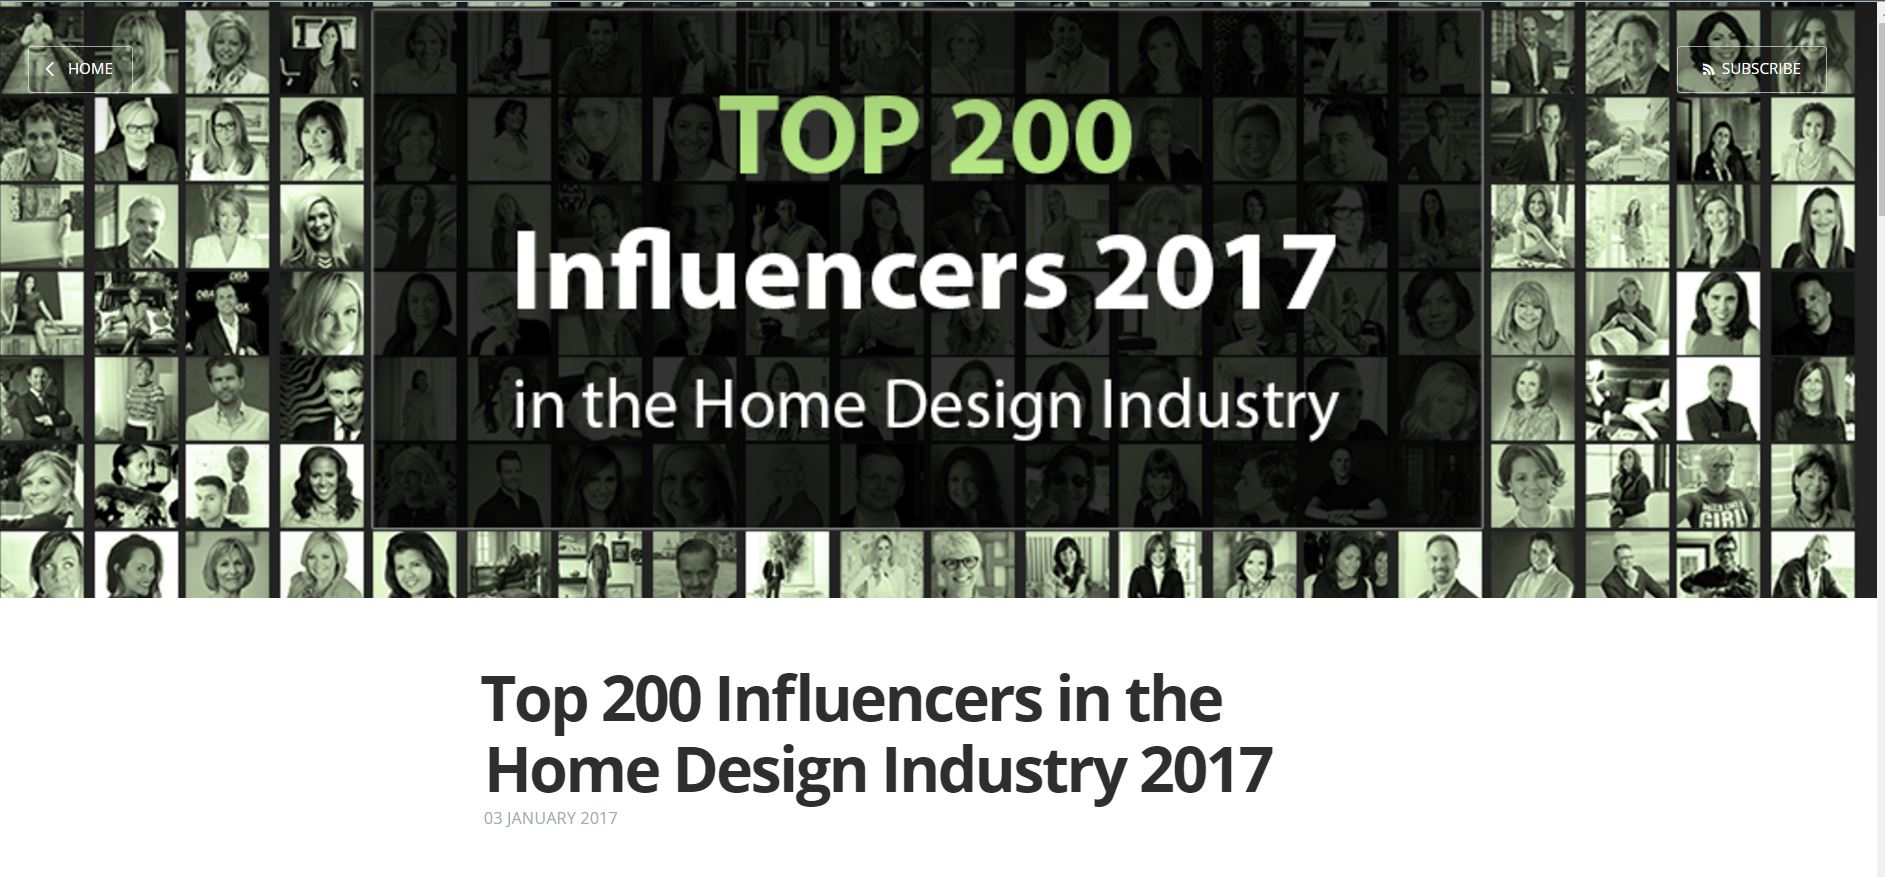 Home Design Influencers Part - 34: TOP 200 INFLUENCERS IN THE HOME DESIGN INDUSTRY 2017 | Chatti Patti Talks  Design!